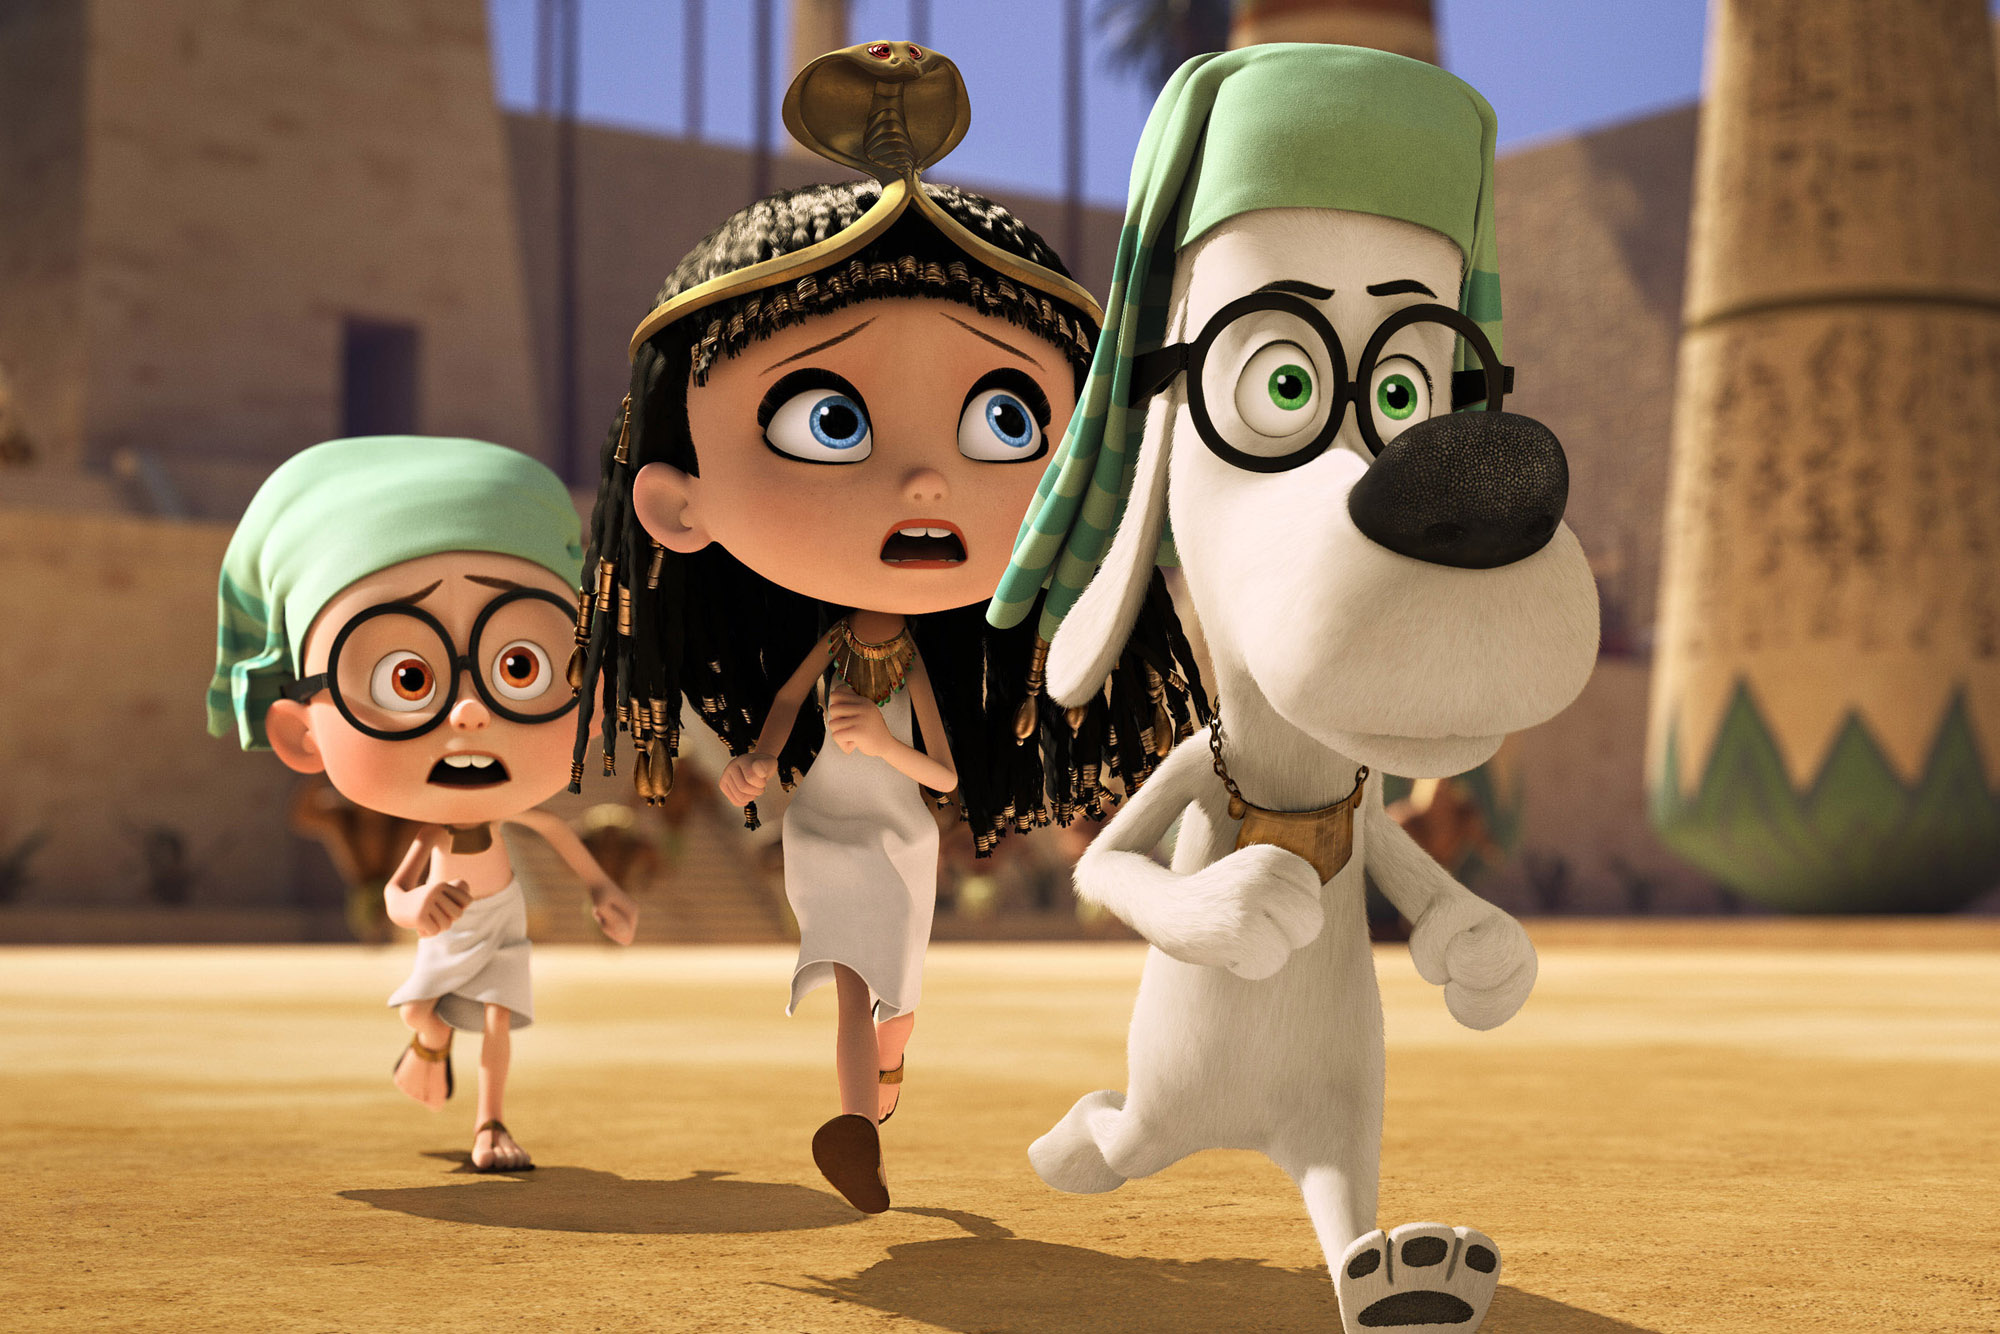 Mr. Peabody & Sherman HD wallpapers, Desktop wallpaper - most viewed